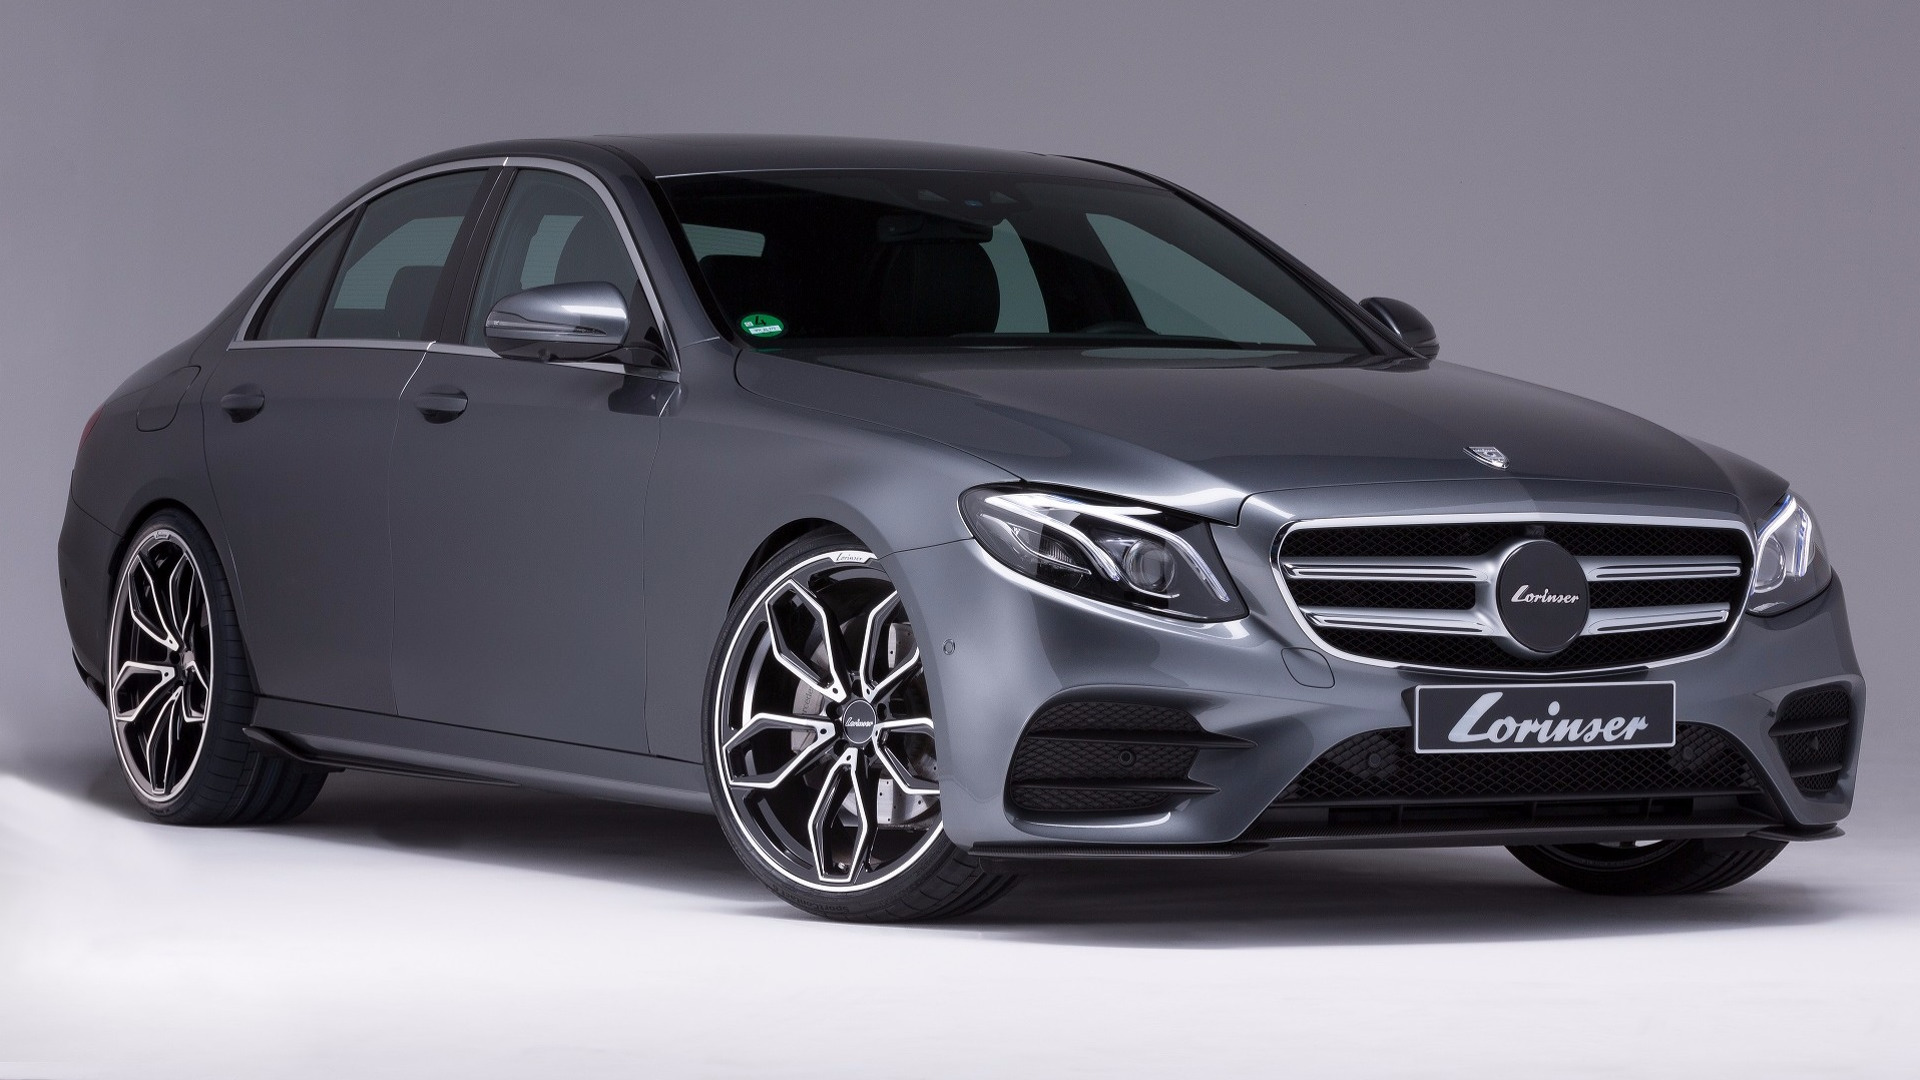 Lorinser gives the 2017 mercedes e class a makeover for Mercedes benz e class amg 2017